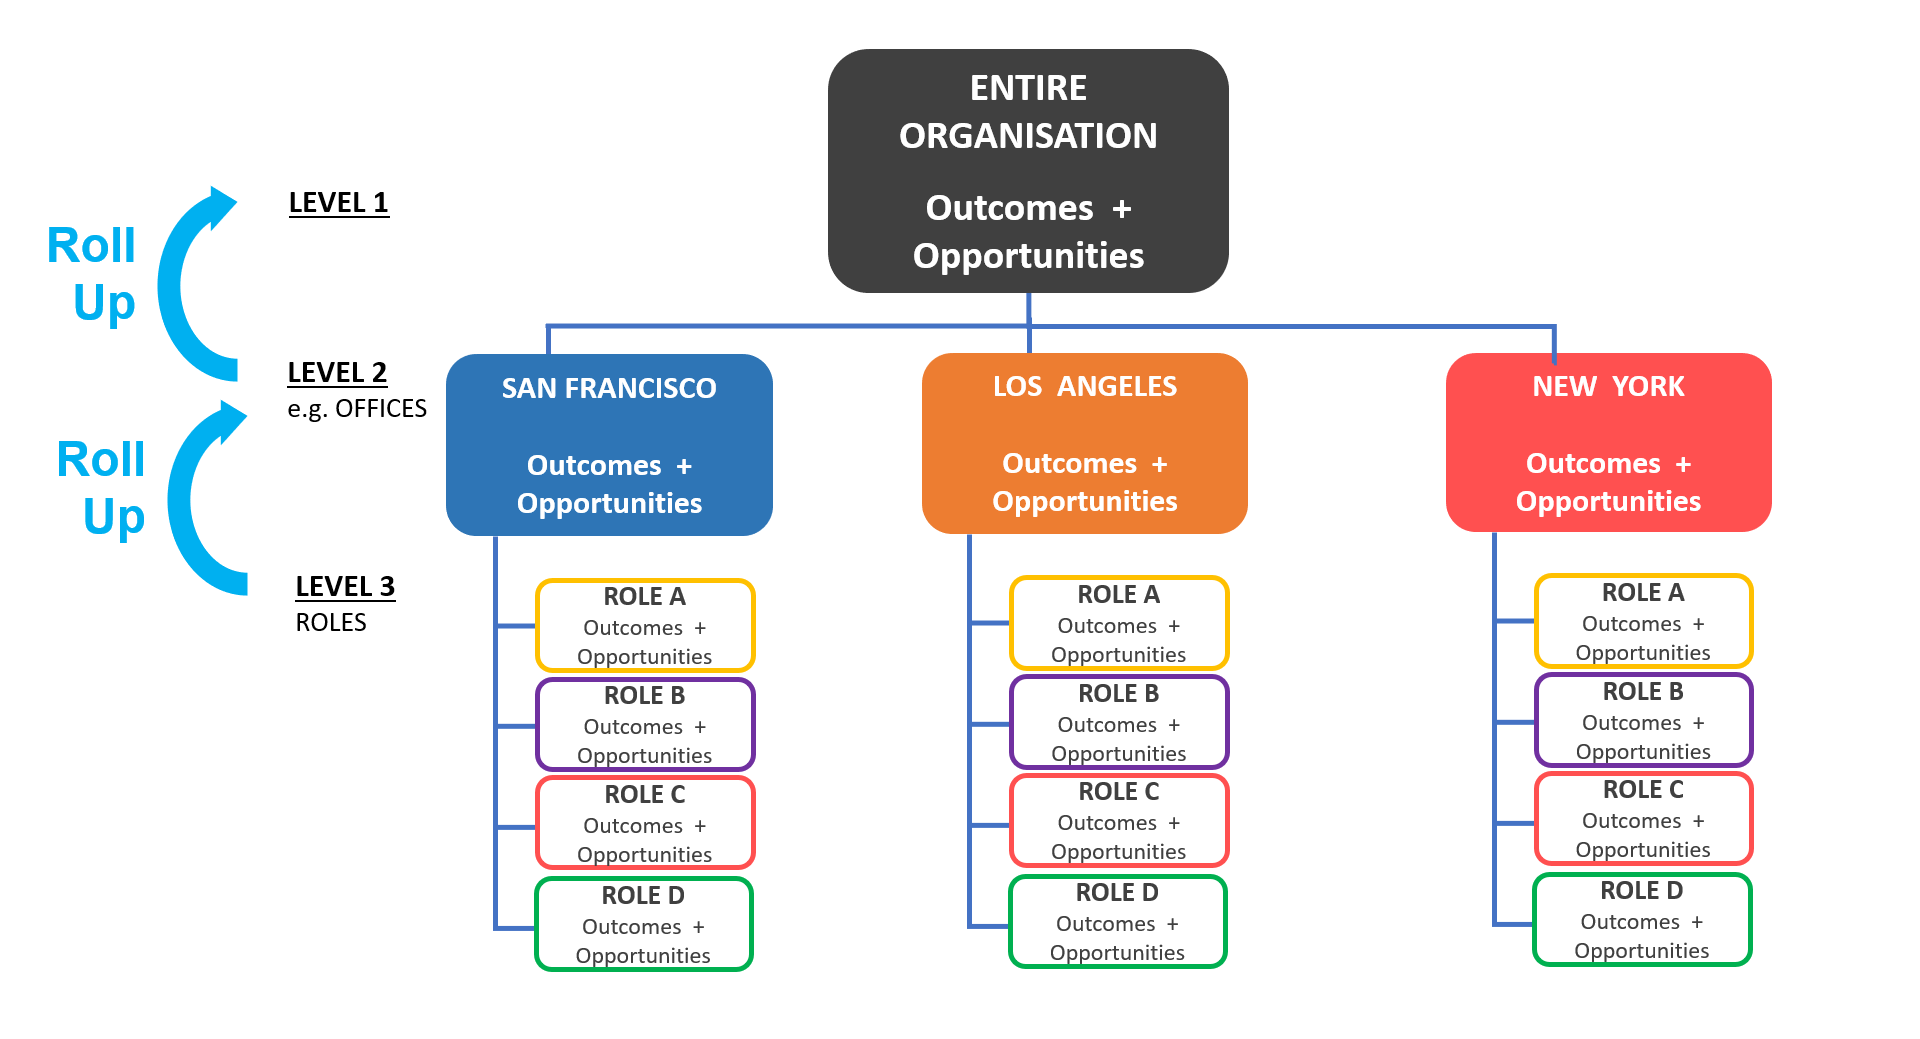 Aggregate Outcomes and Opportunities into Teams, Units, the entire organisation